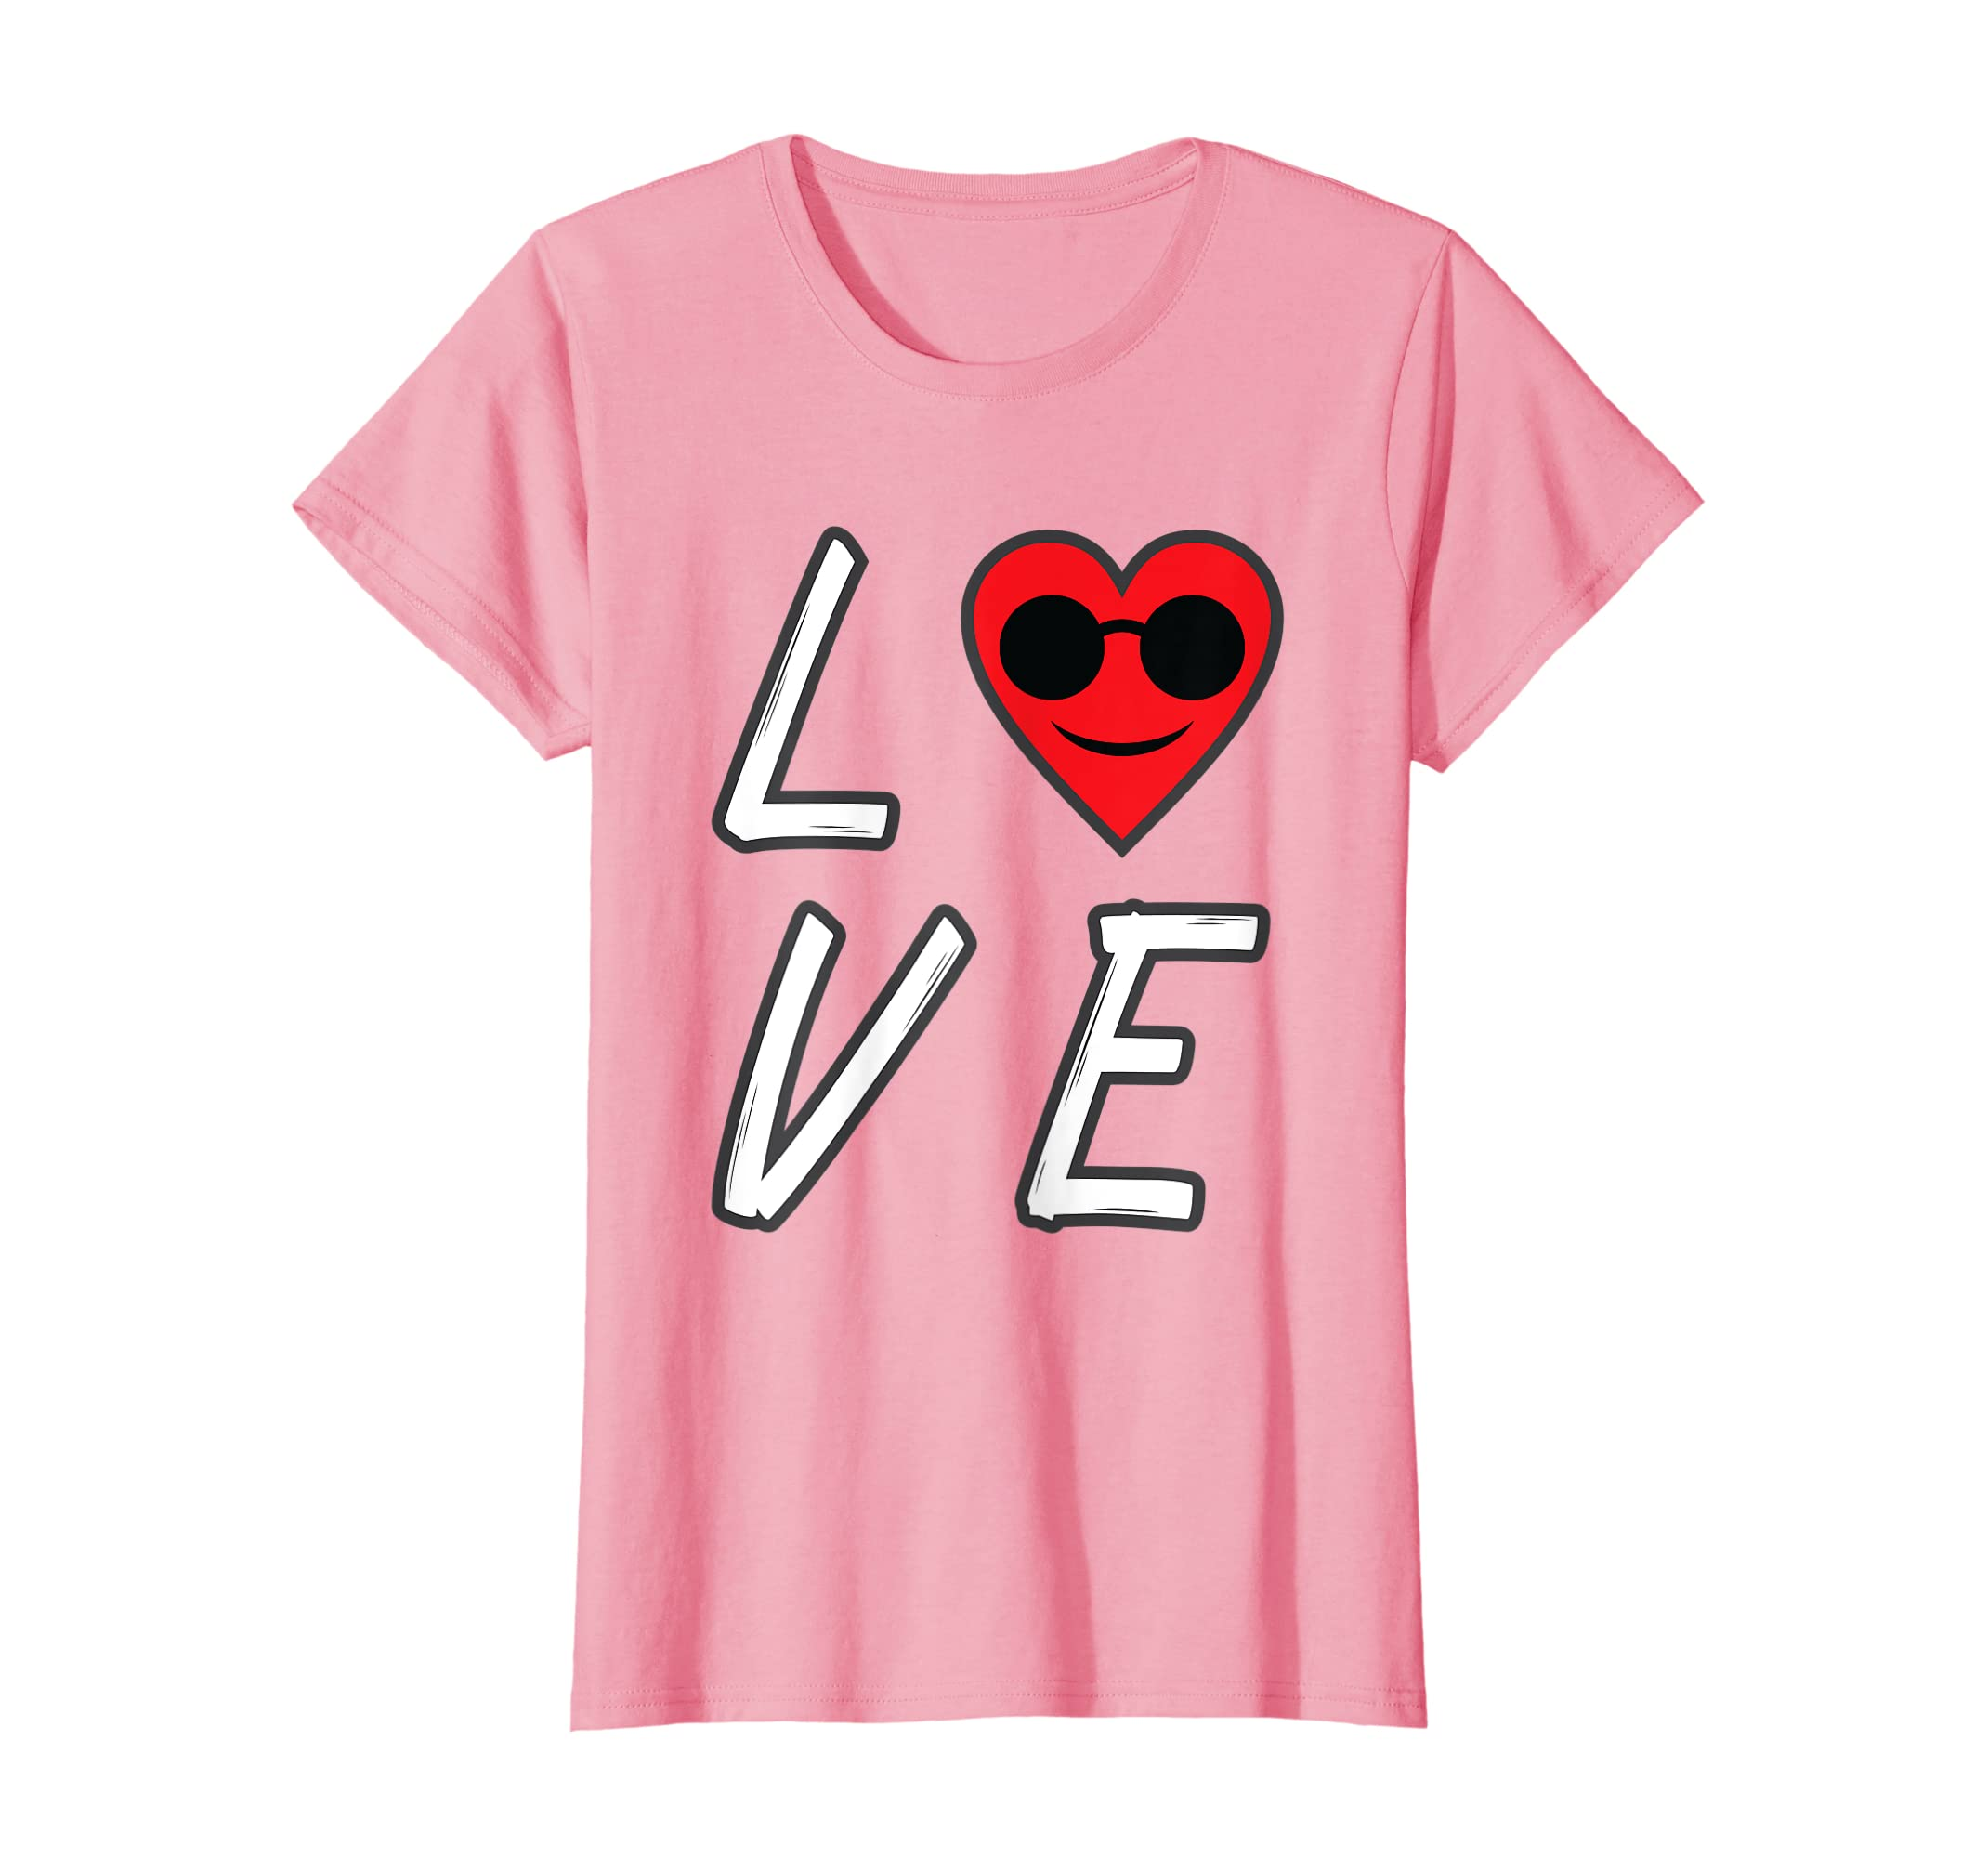 a34d95195f Amazon.com  Love Heart Emoji With Sunglasses T-Shirt Valentines Day Tee   Clothing